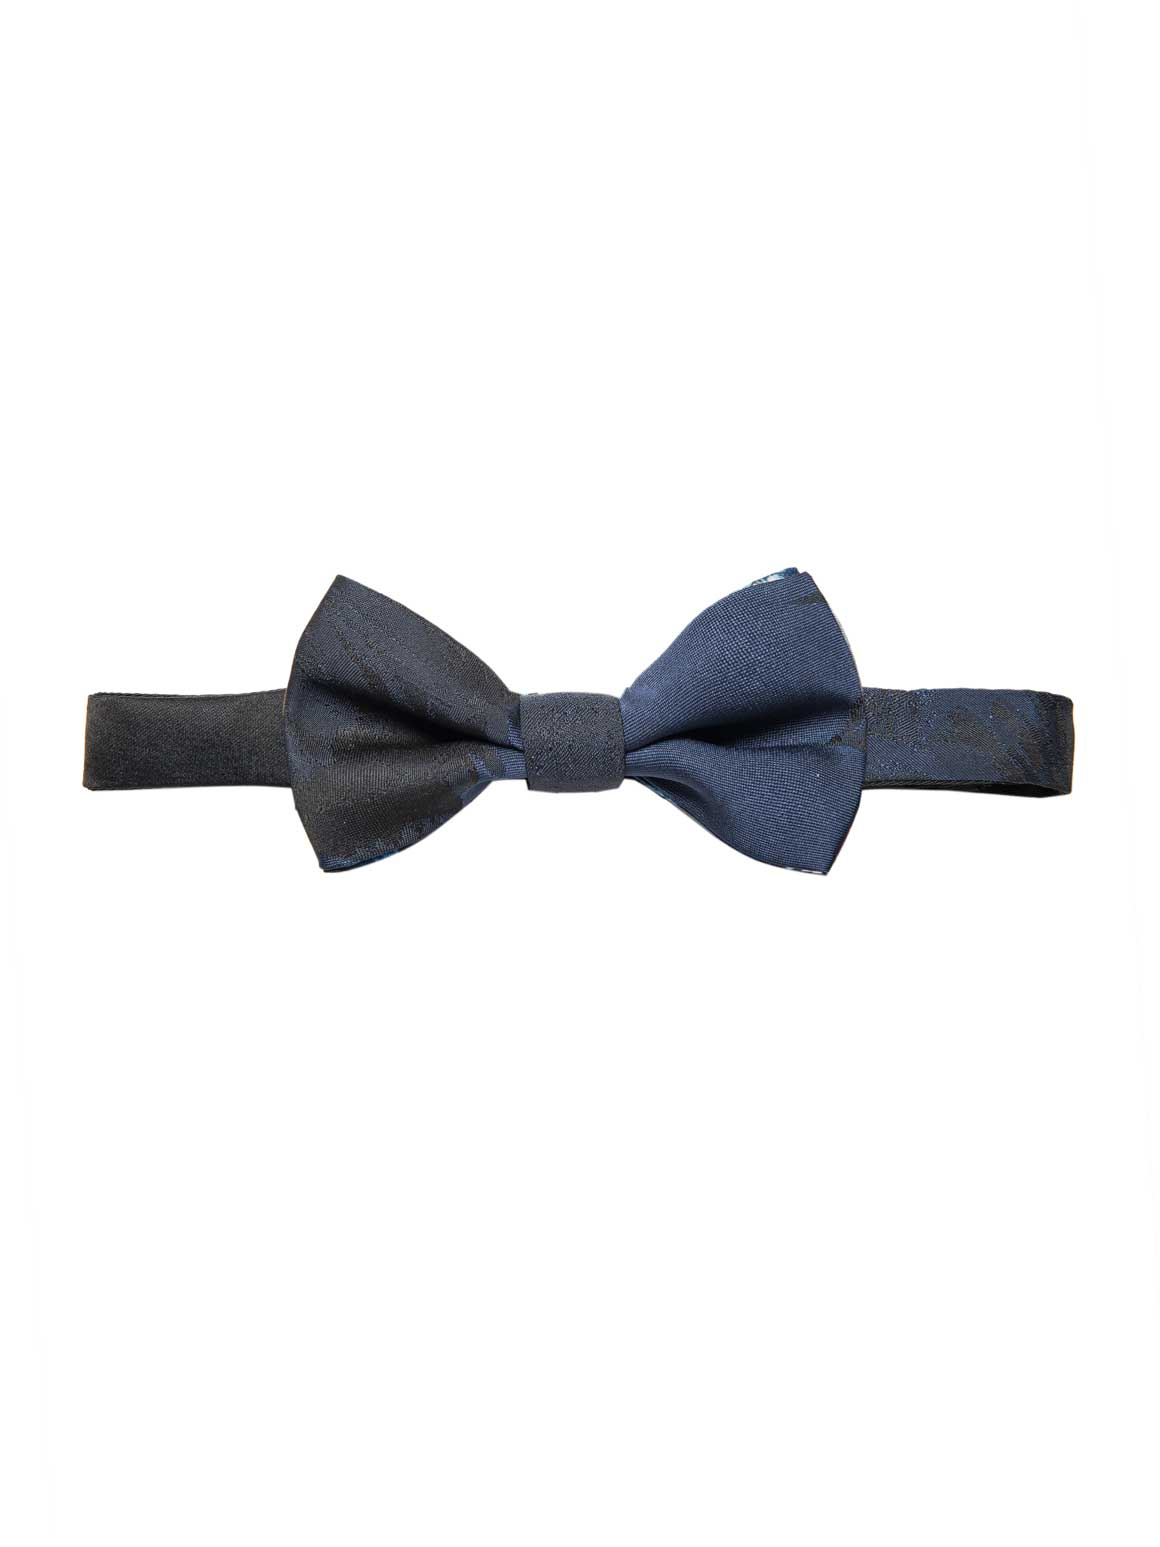 Bradley Bow Tie - Black & Blue Floral